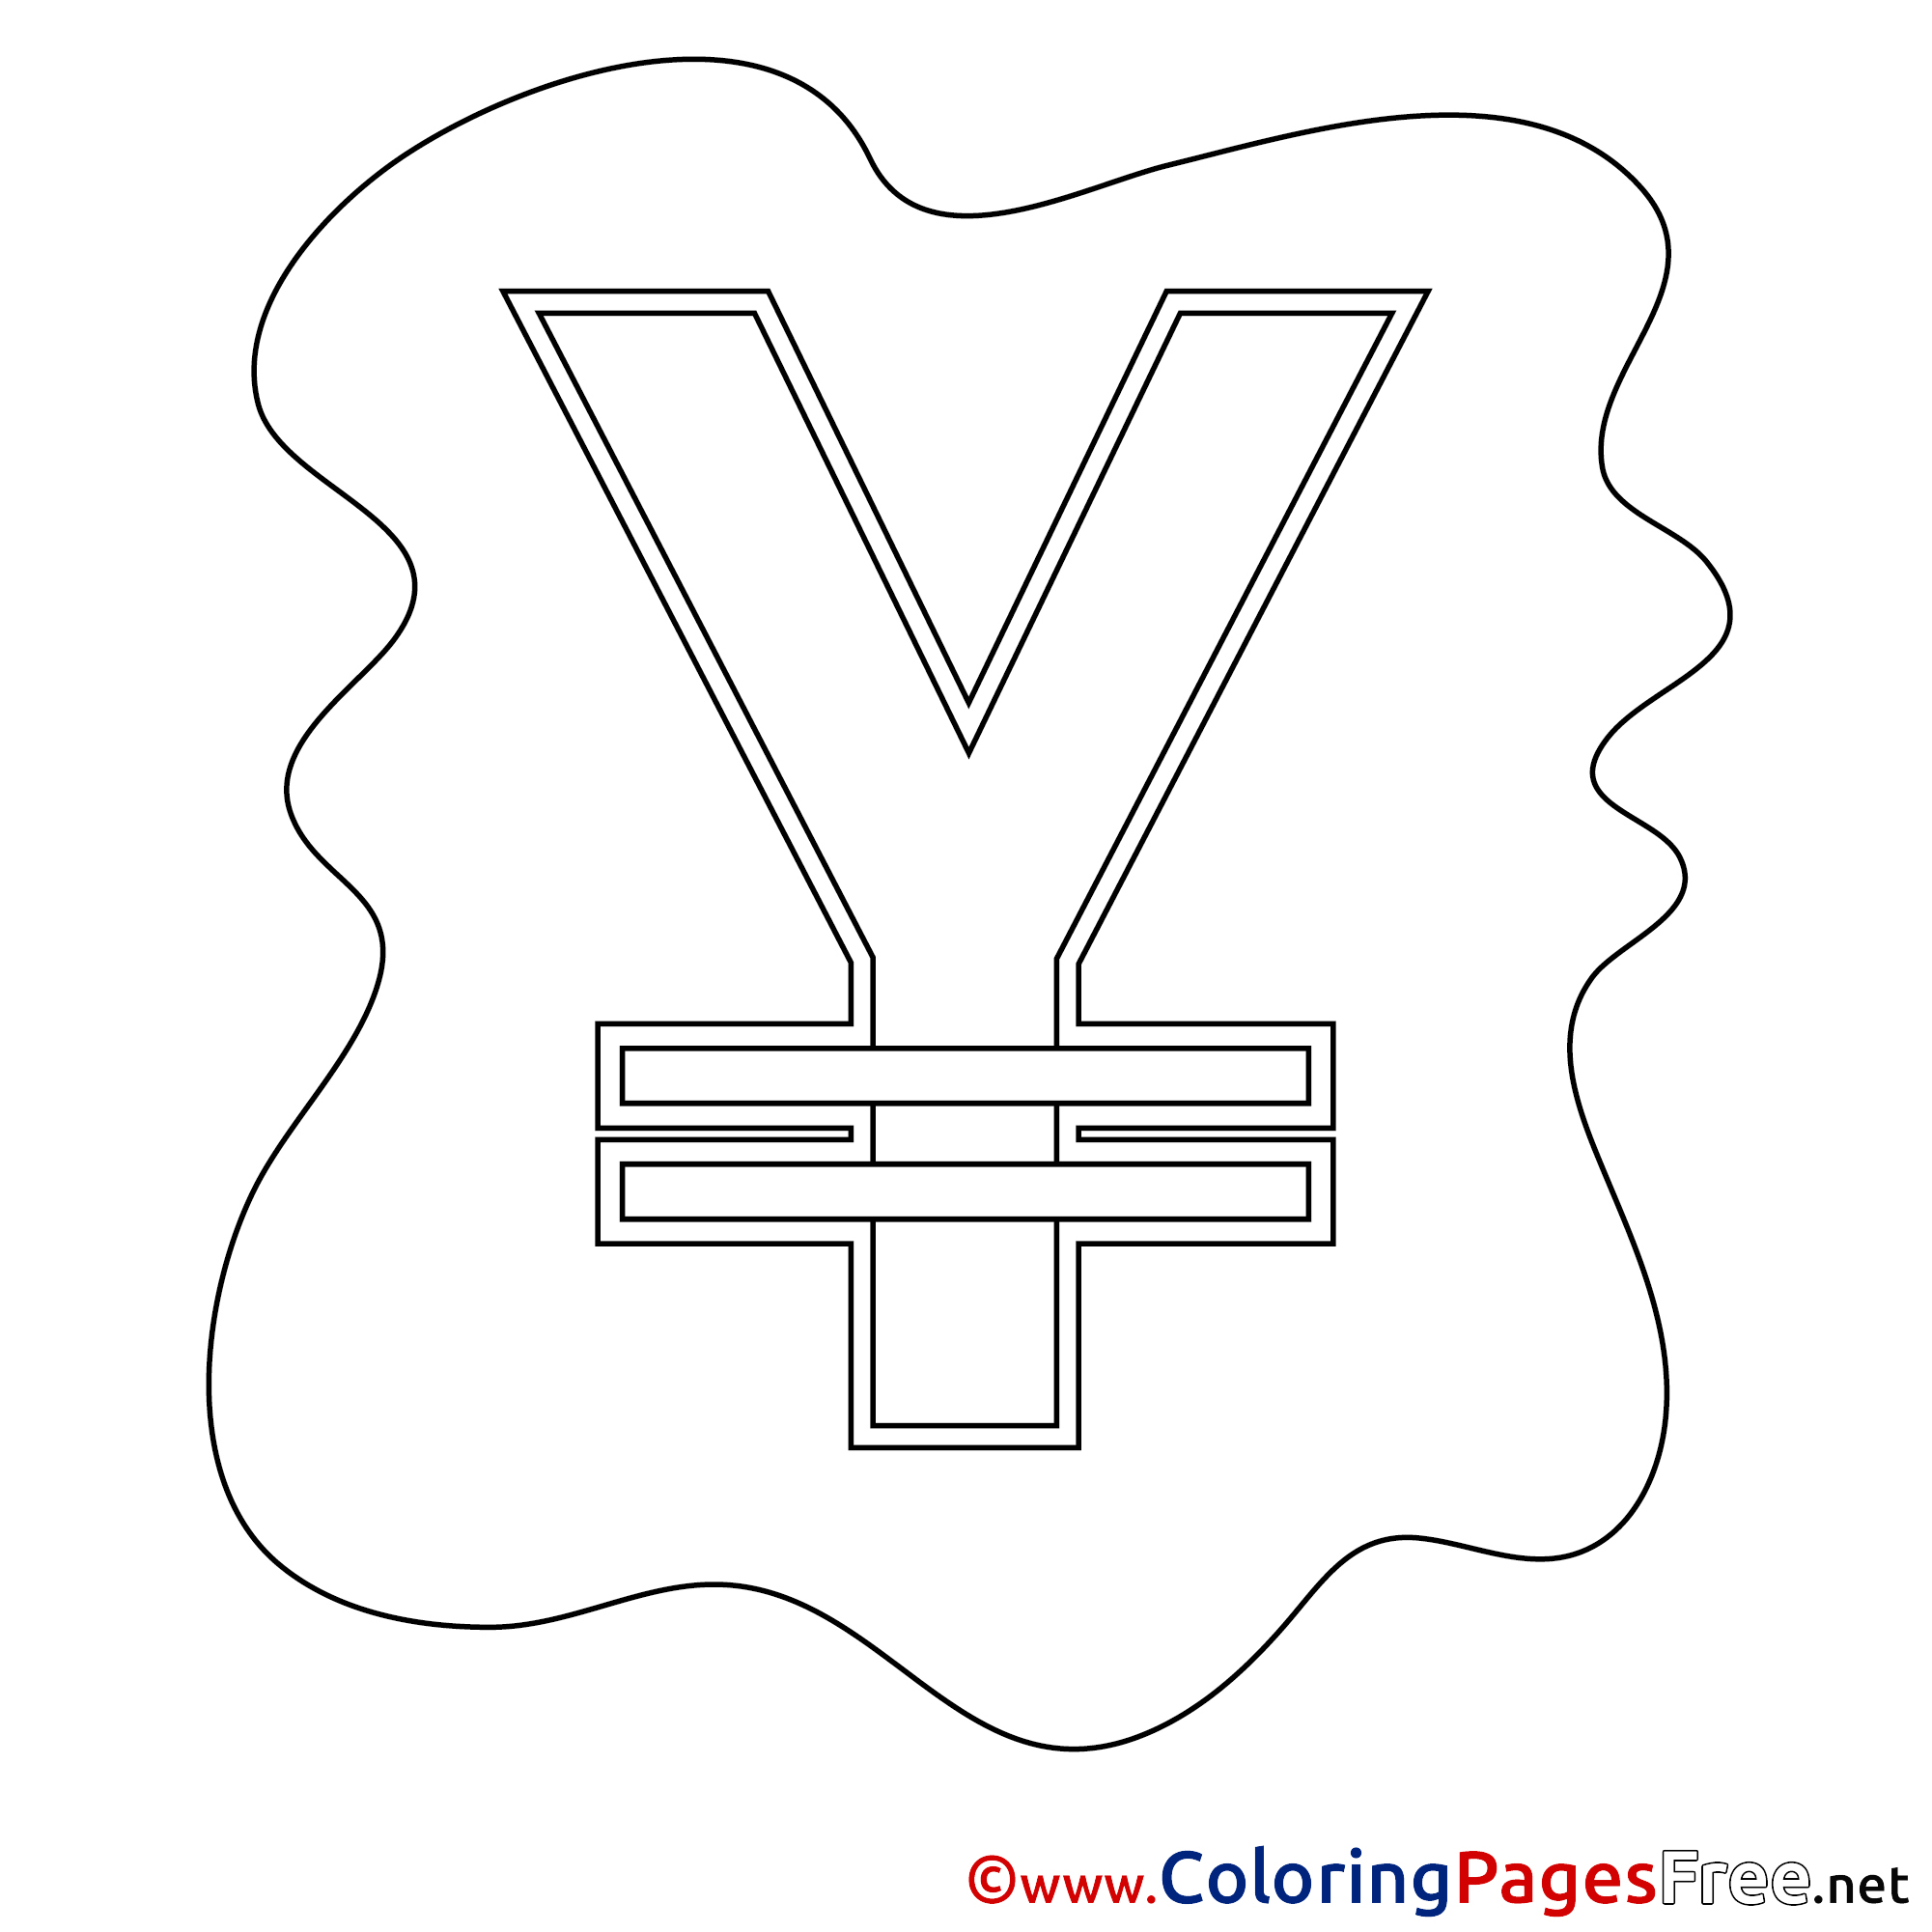 yen free colouring page business